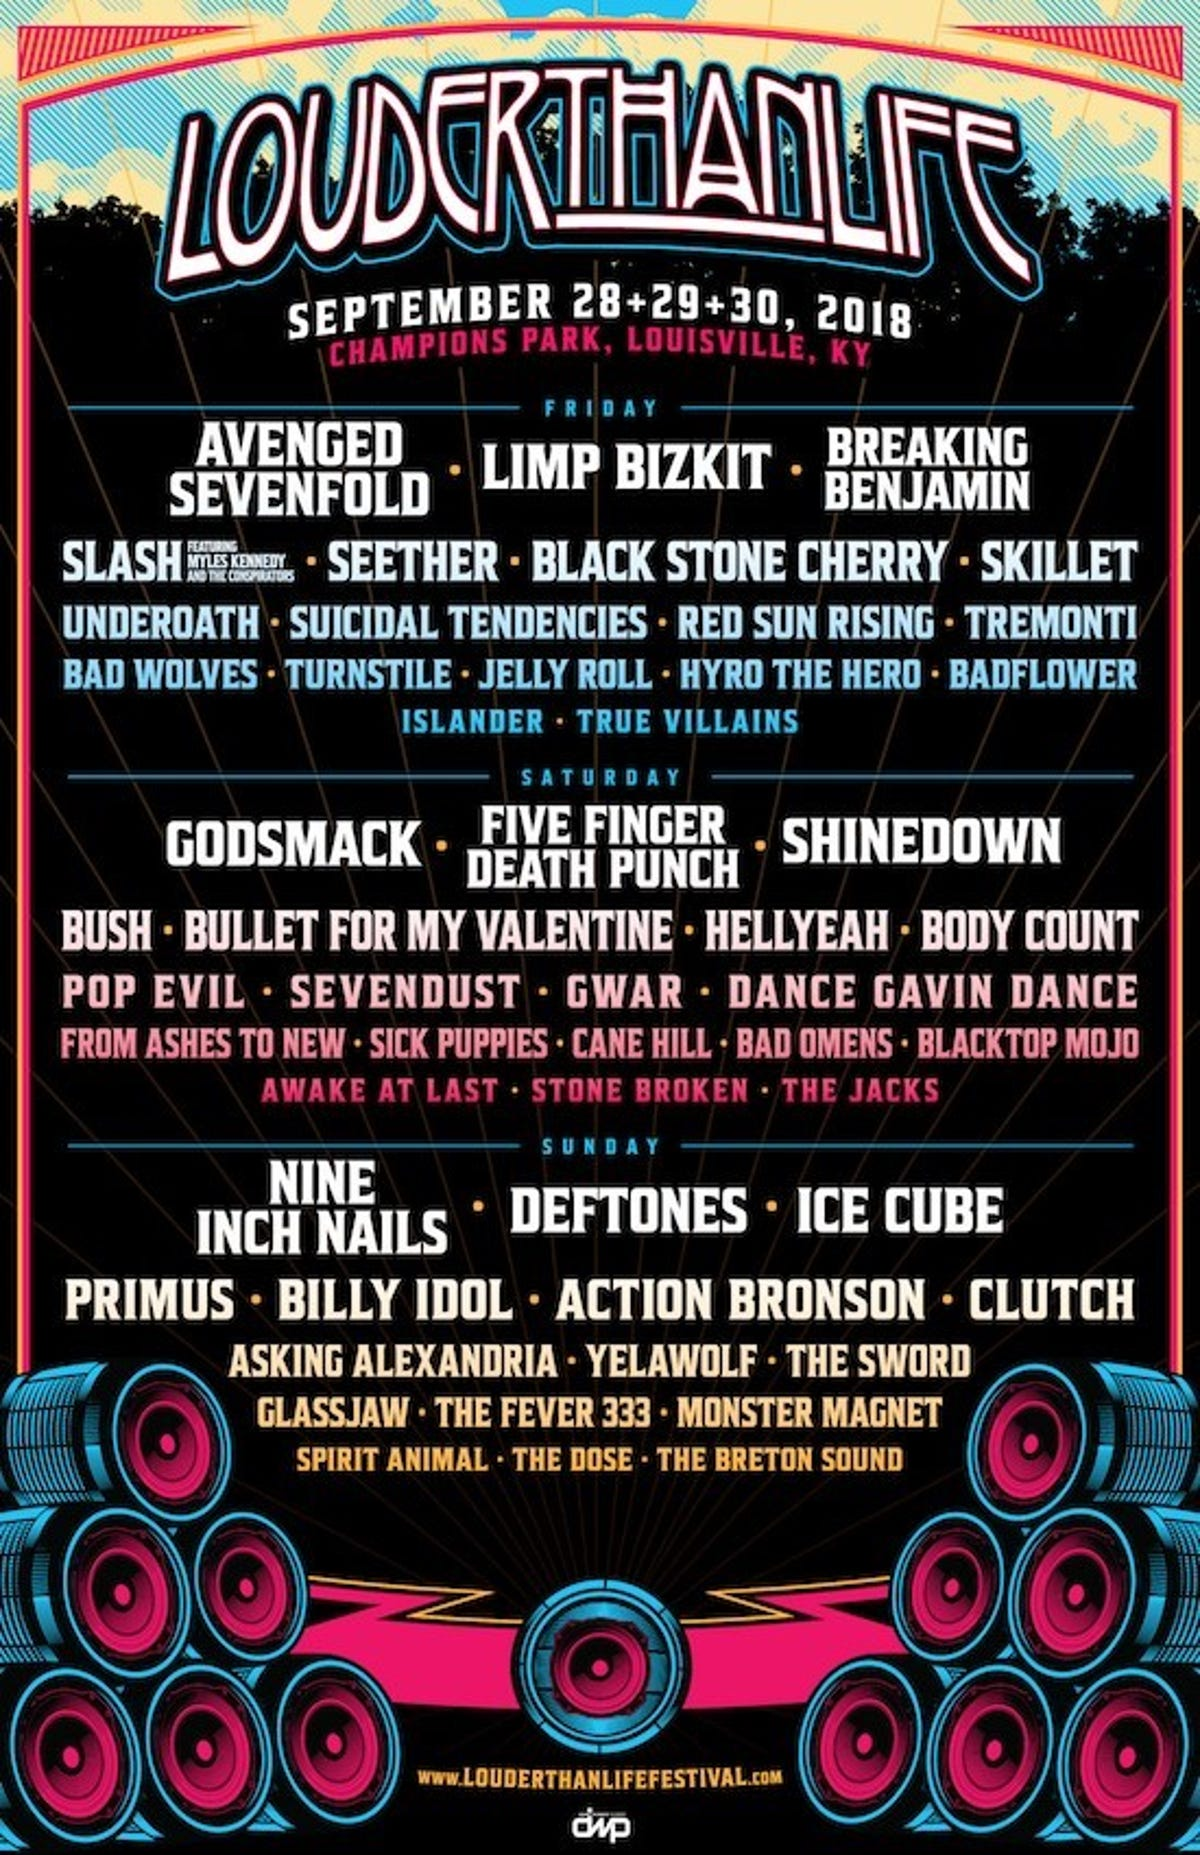 Louder Than Life 2018 lineup: Nine Inch Nails, Five Finger